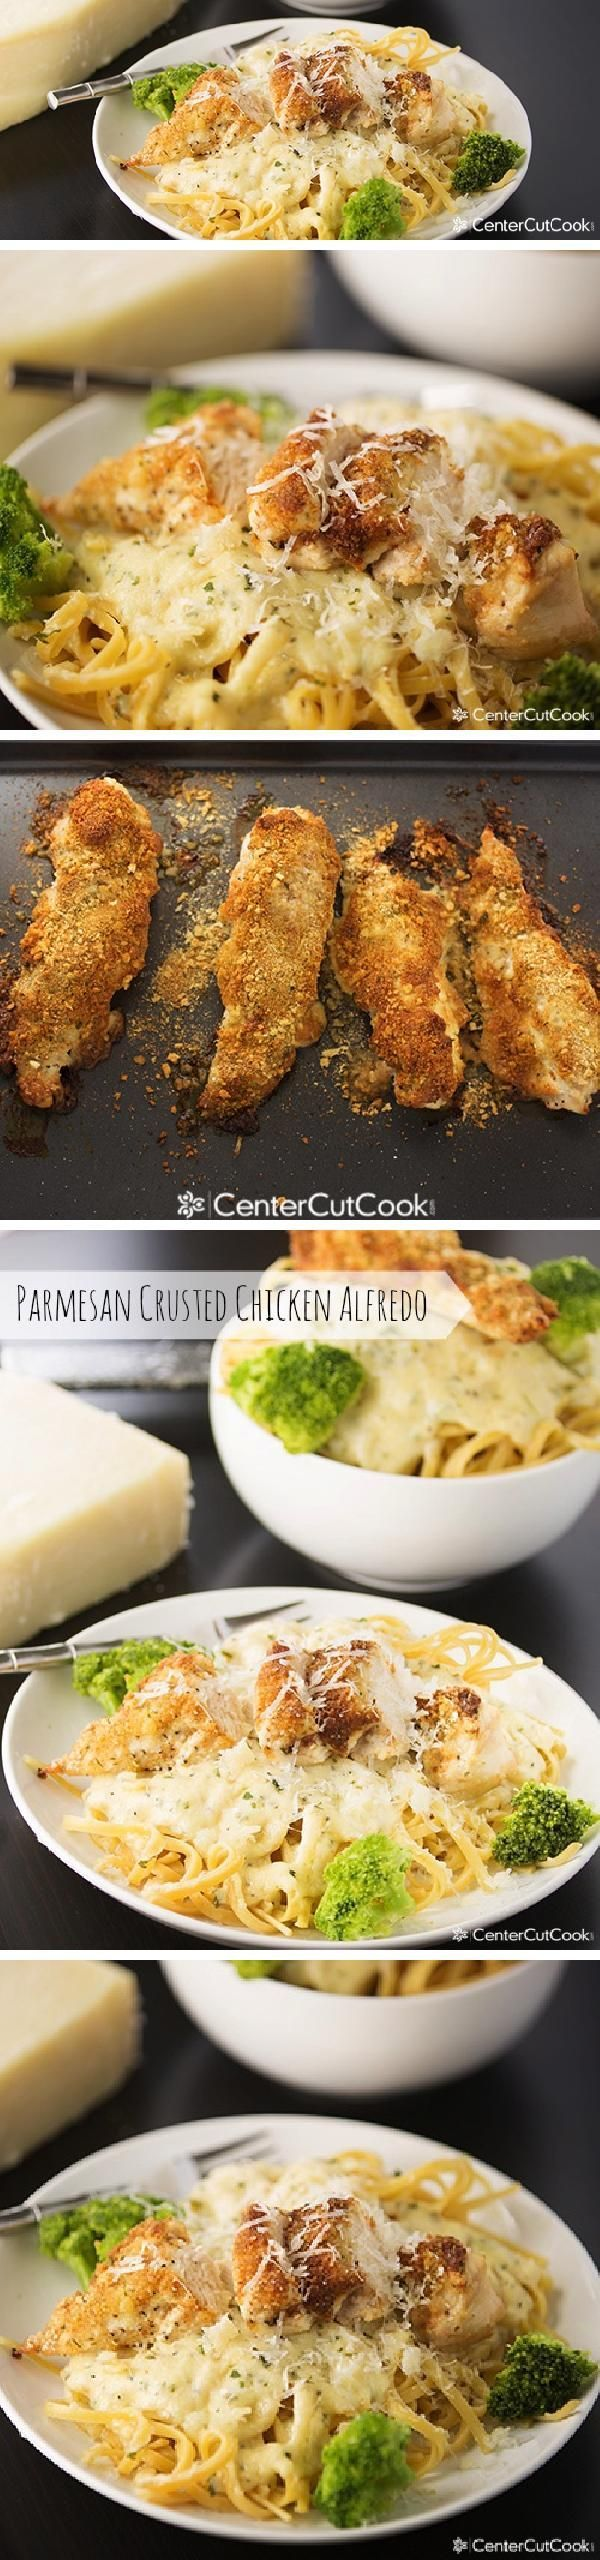 Crispy crunchy PARMESAN CRUSTED CHICKEN ALFREDO is a meal your whole family will love!